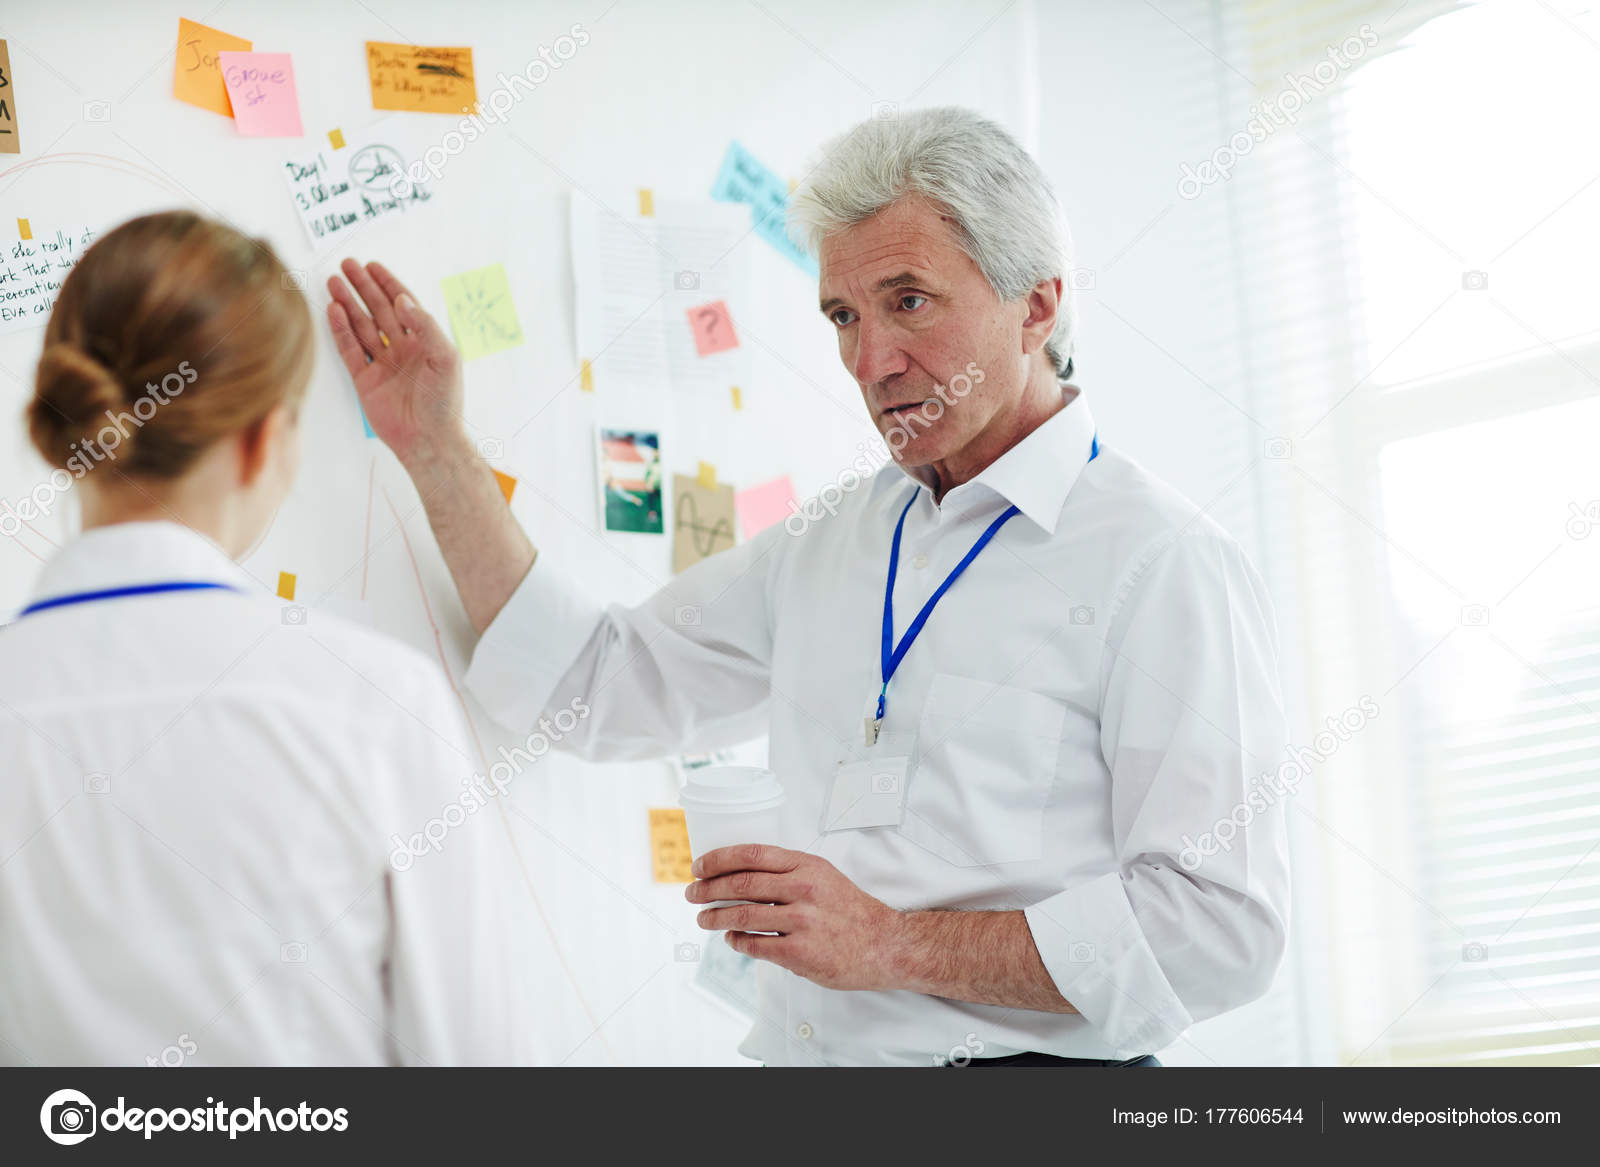 Confident Mature Private Investigator And His Young Assistant Gathered Together At Investigation Board Making Assumptions About Possible Motives Of